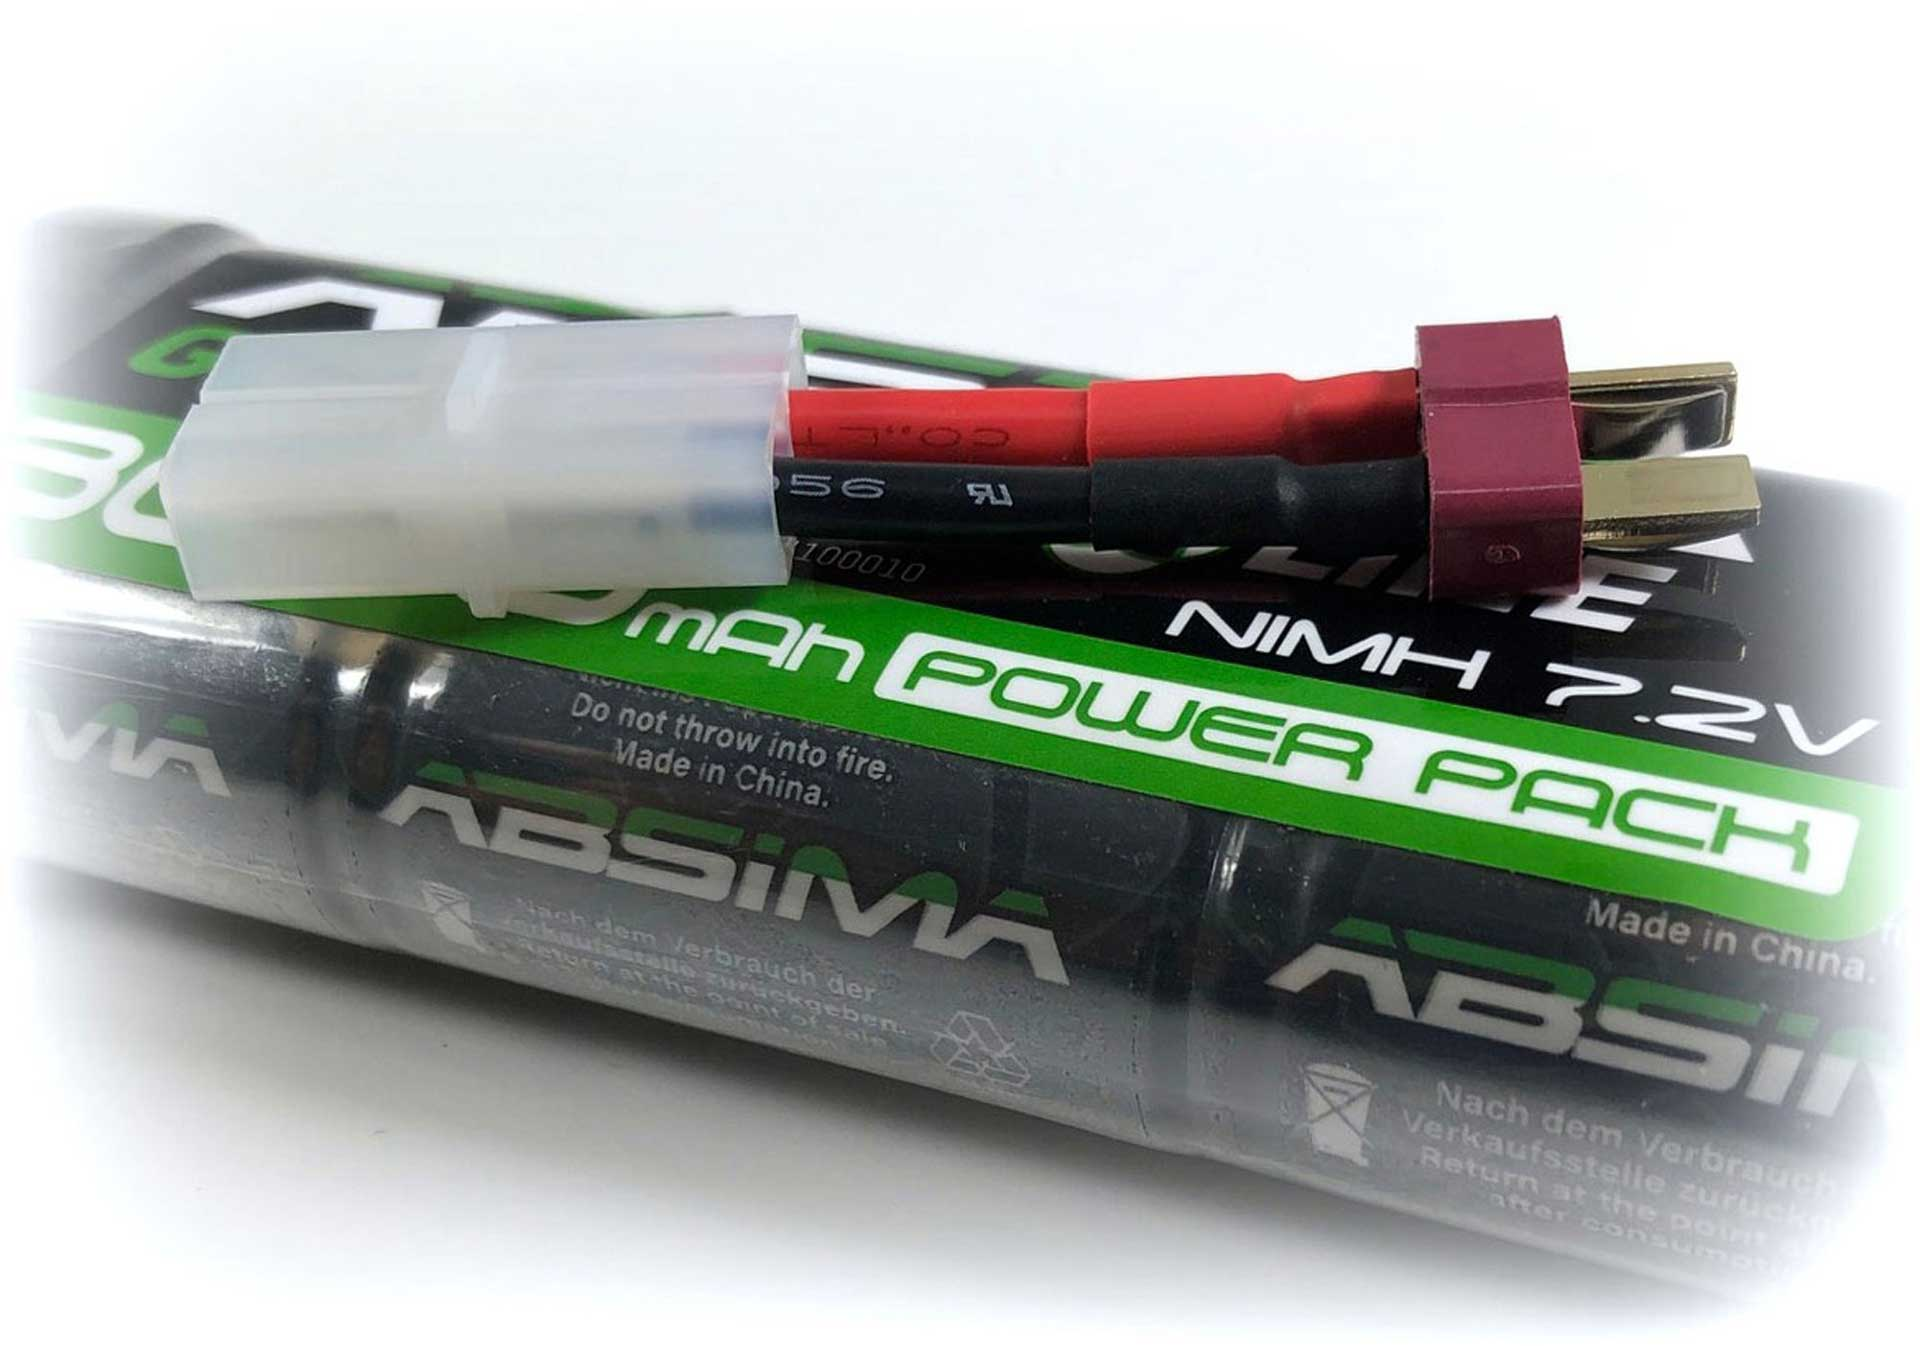 ABSIMA GREENHORN NIMH STICK PACK 7.2V 3000MAH BATTERY WITH T-PLUG CONNECTOR + TAMIYA ADAPTER